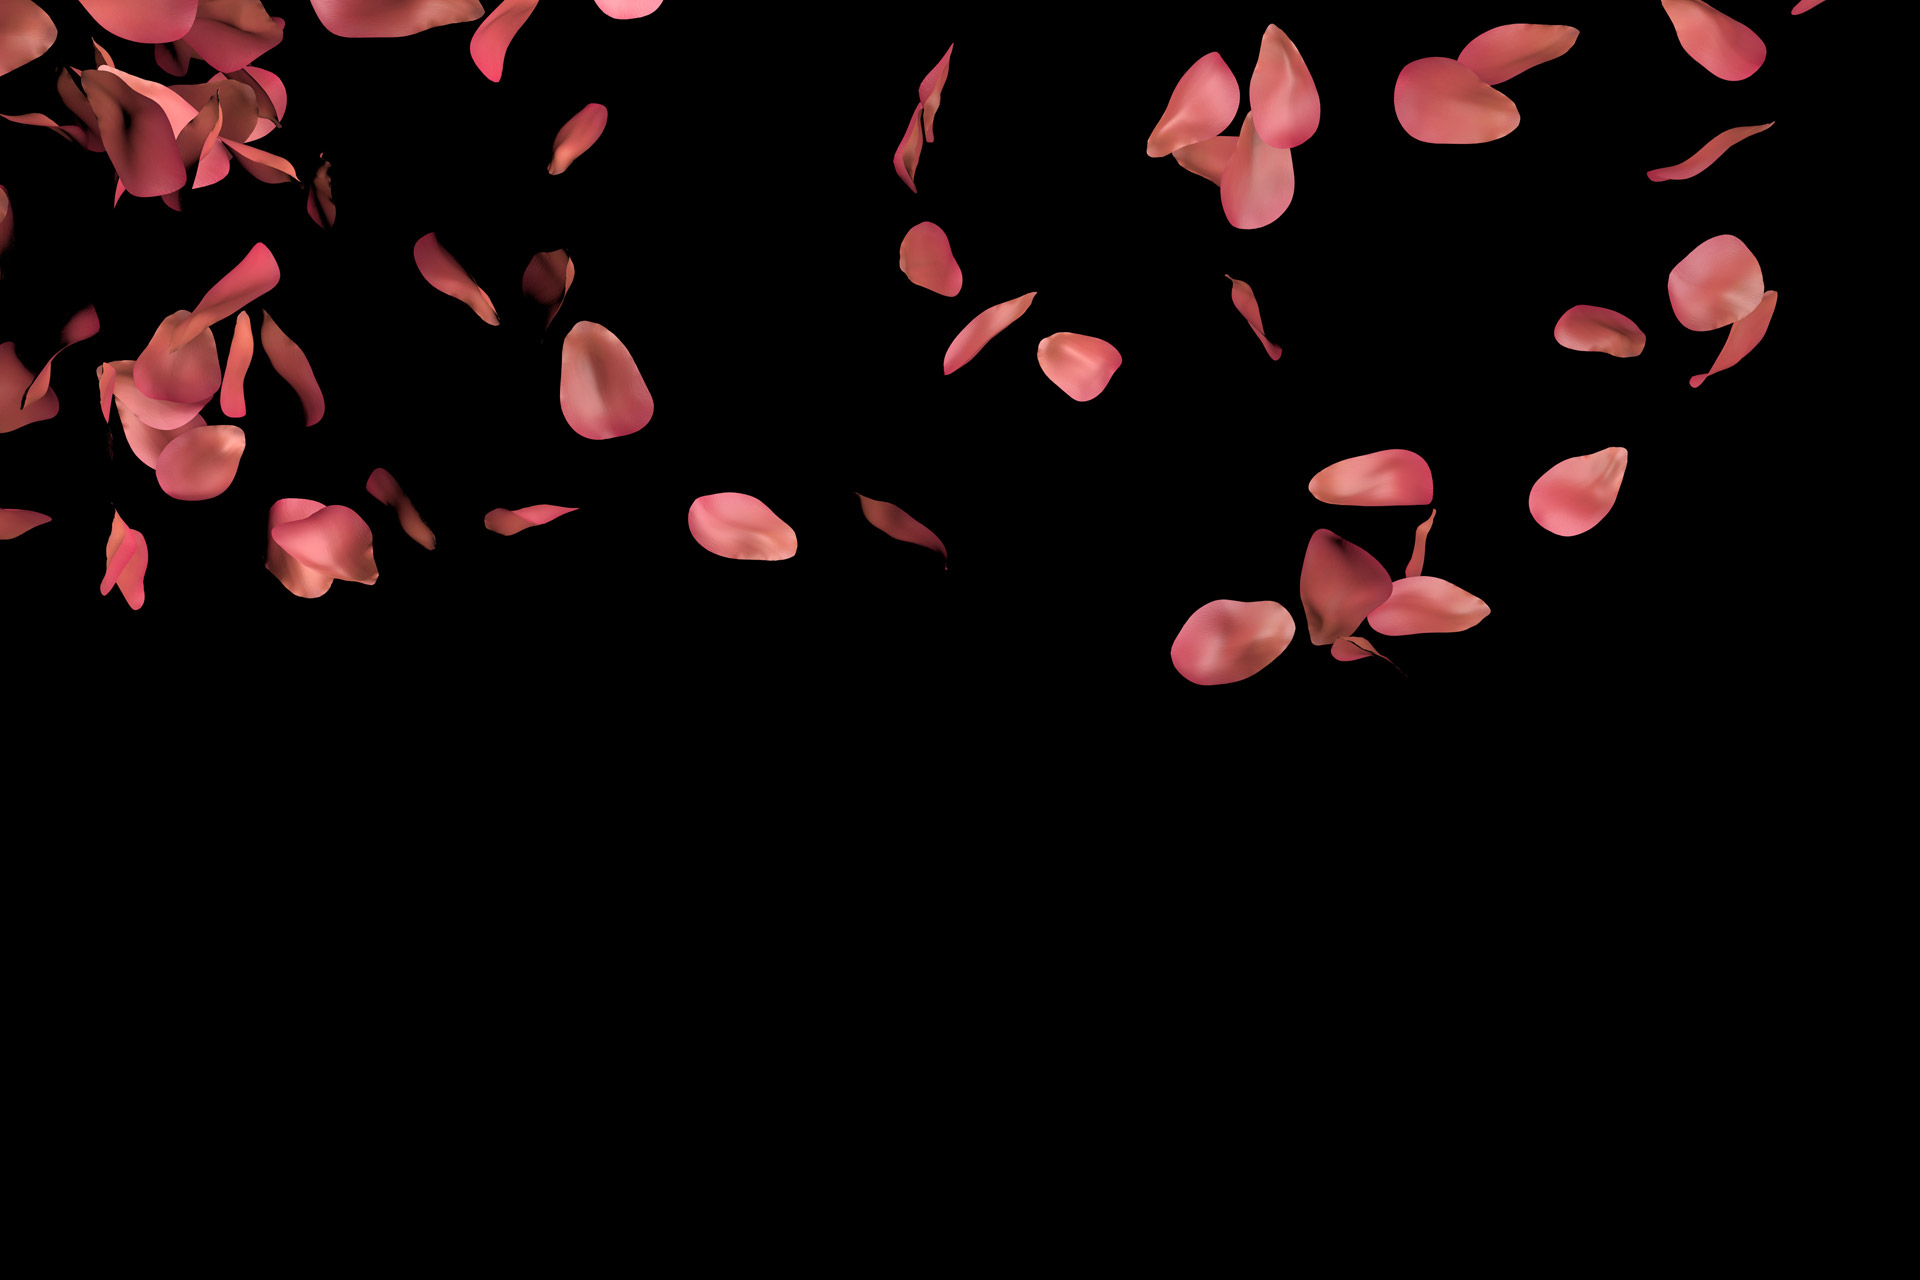 Rose Petals Falling Wallpaper Transparent Gif Rose Petals Free Stock Photo Public Domain Pictures